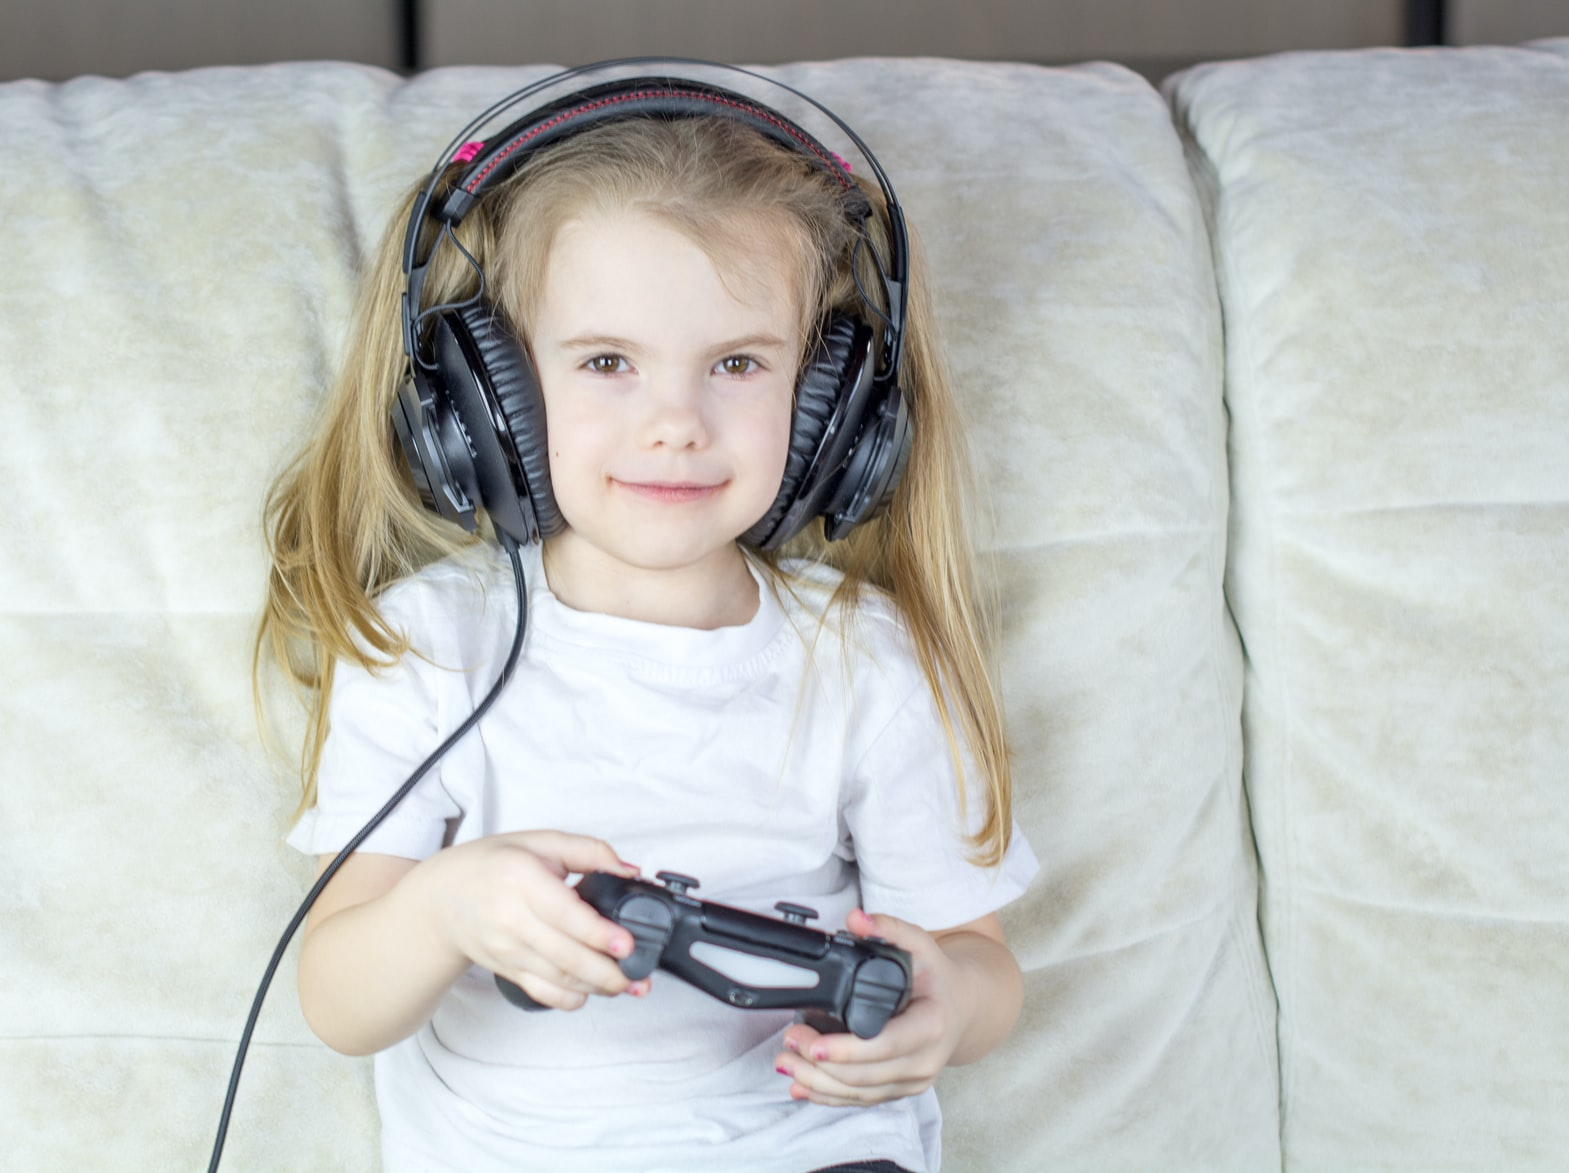 How Do Video Games Affect Our Children 1